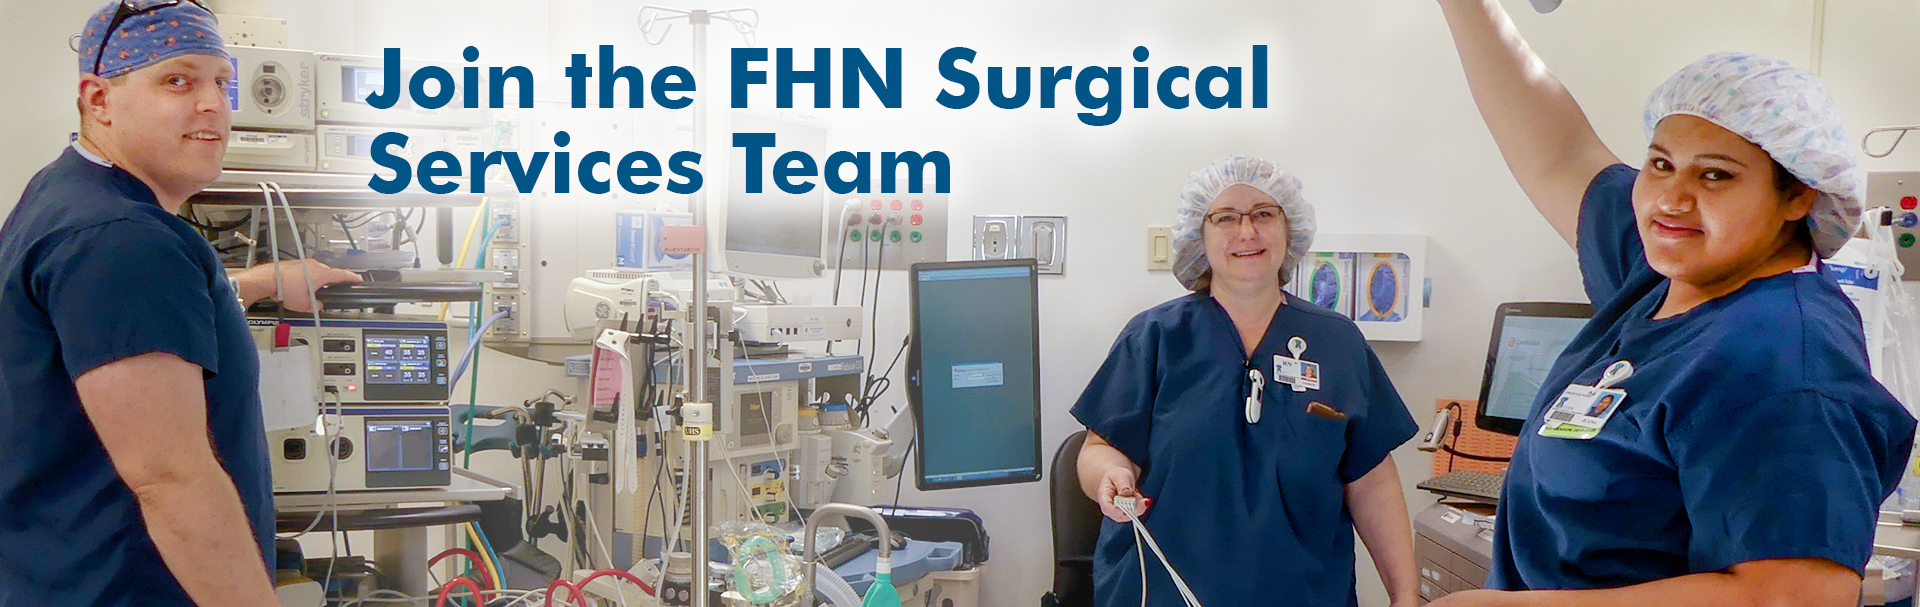 Join the Surgical Services Team at FHN